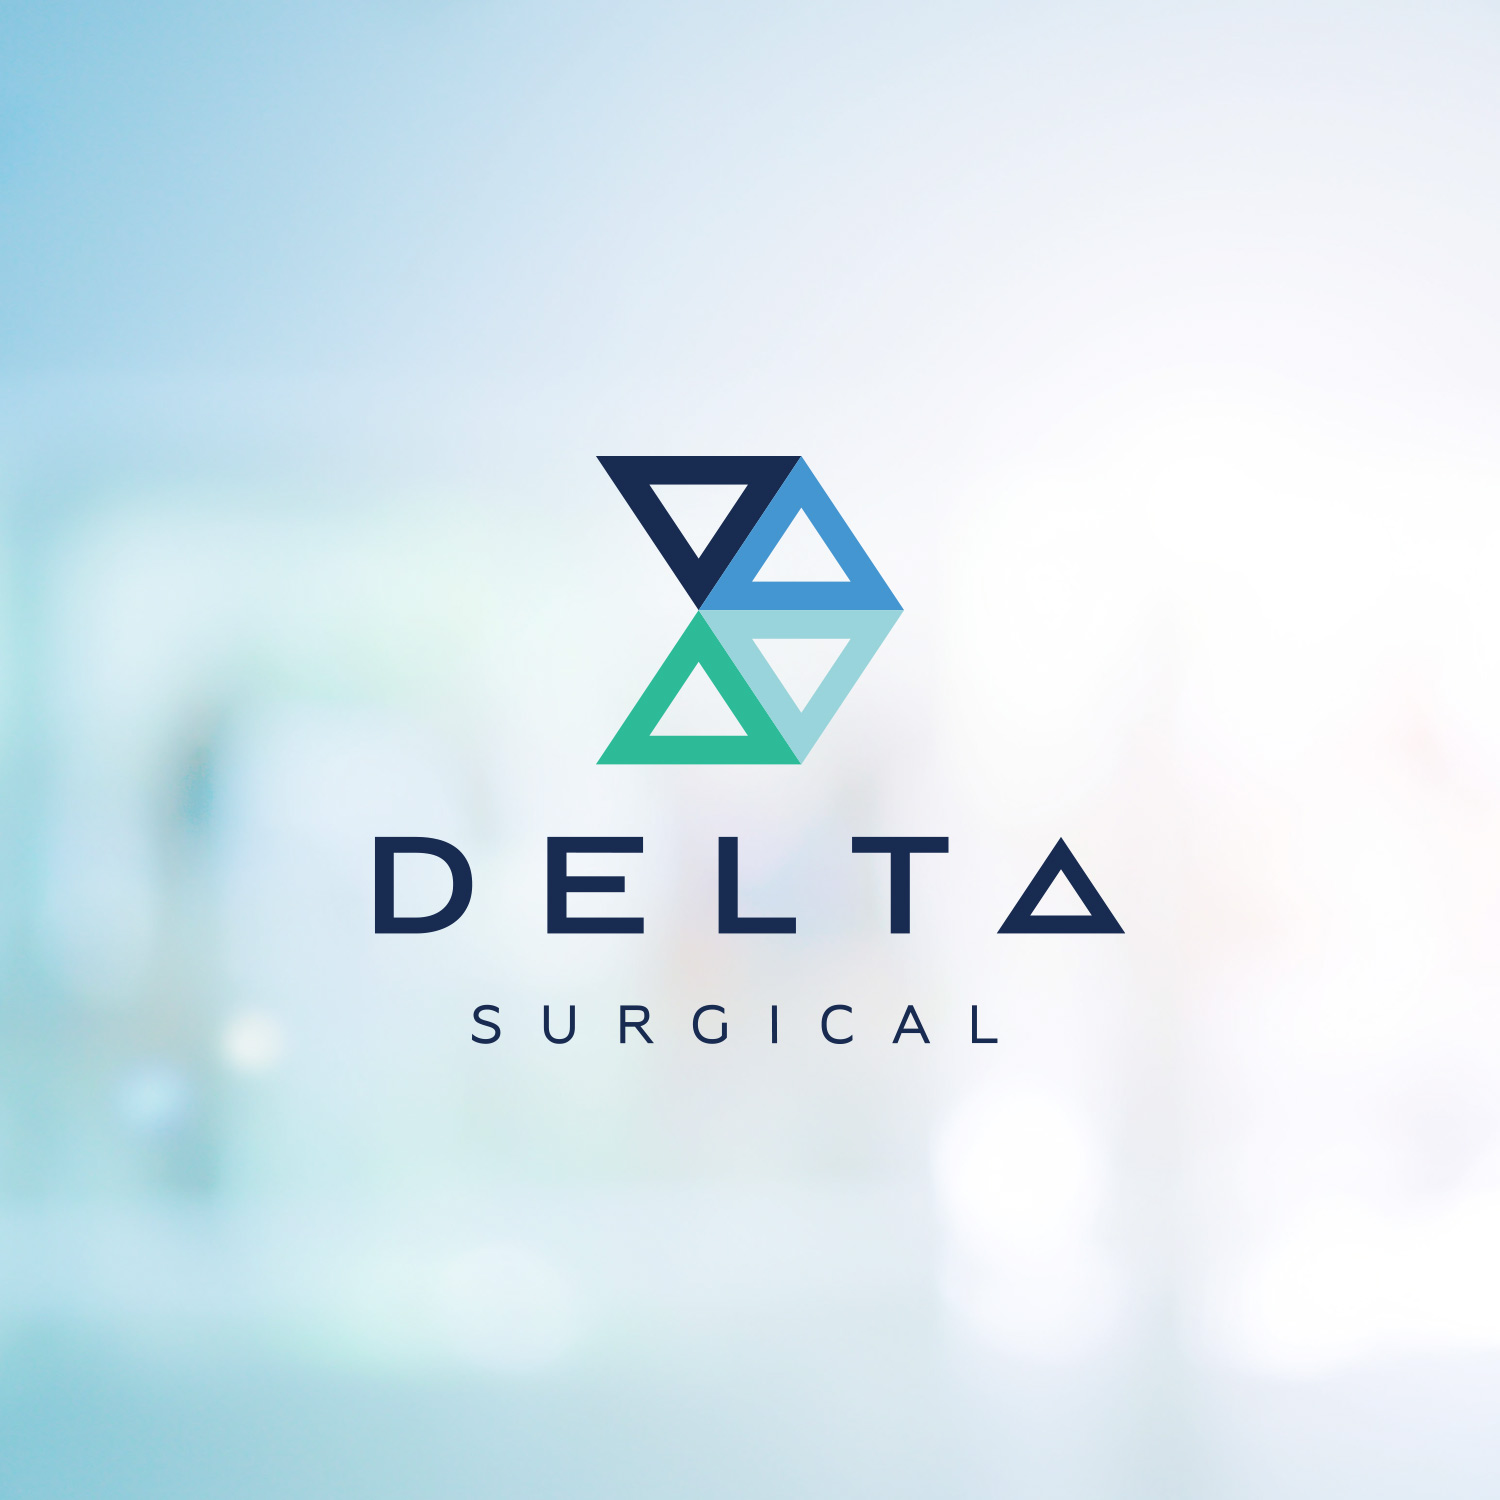 logo design by the sight seekers